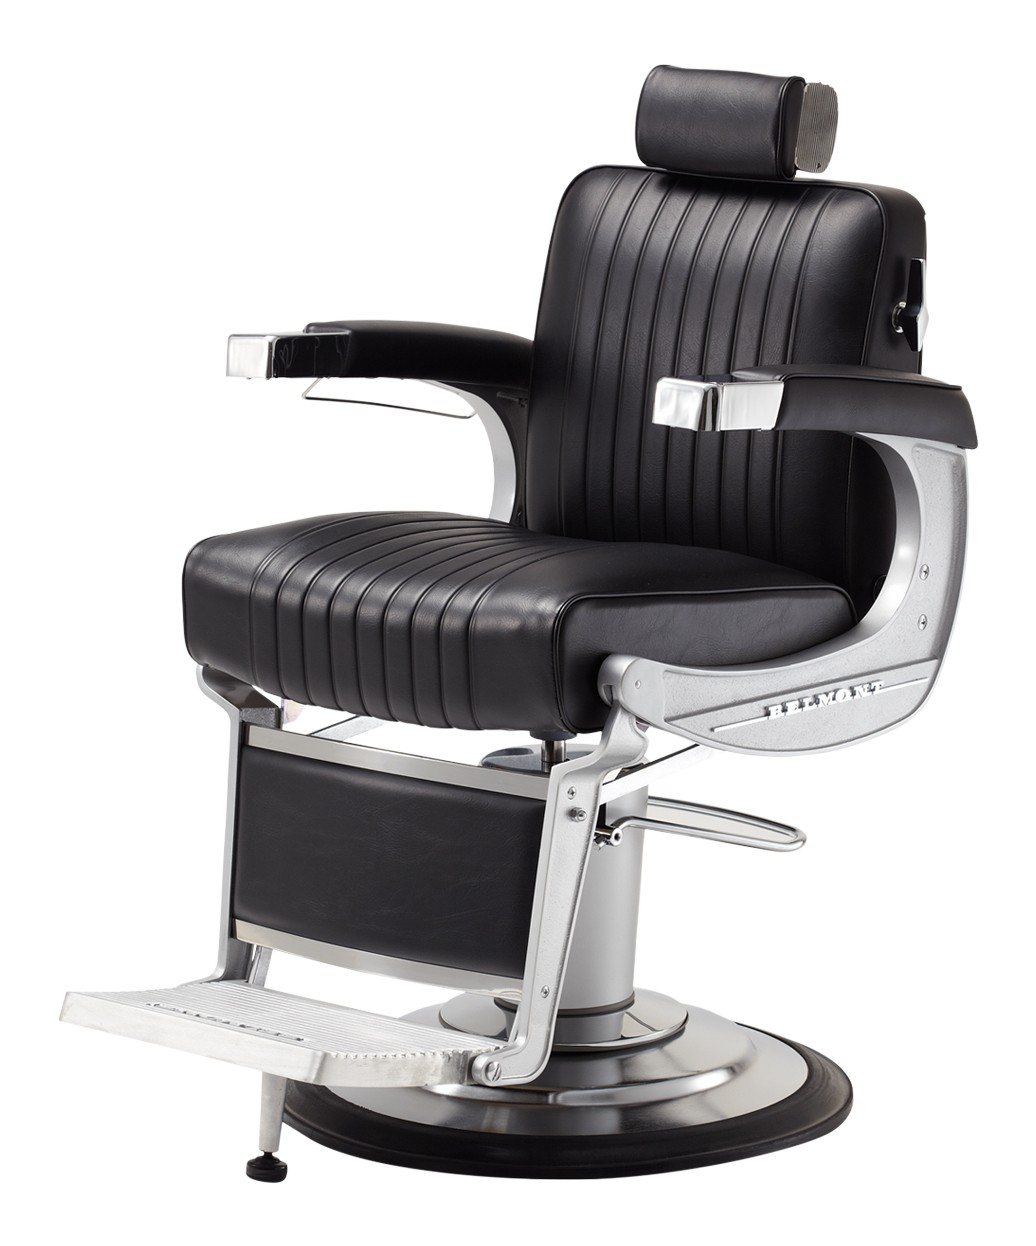 BB-225 Elegance Barber Chair